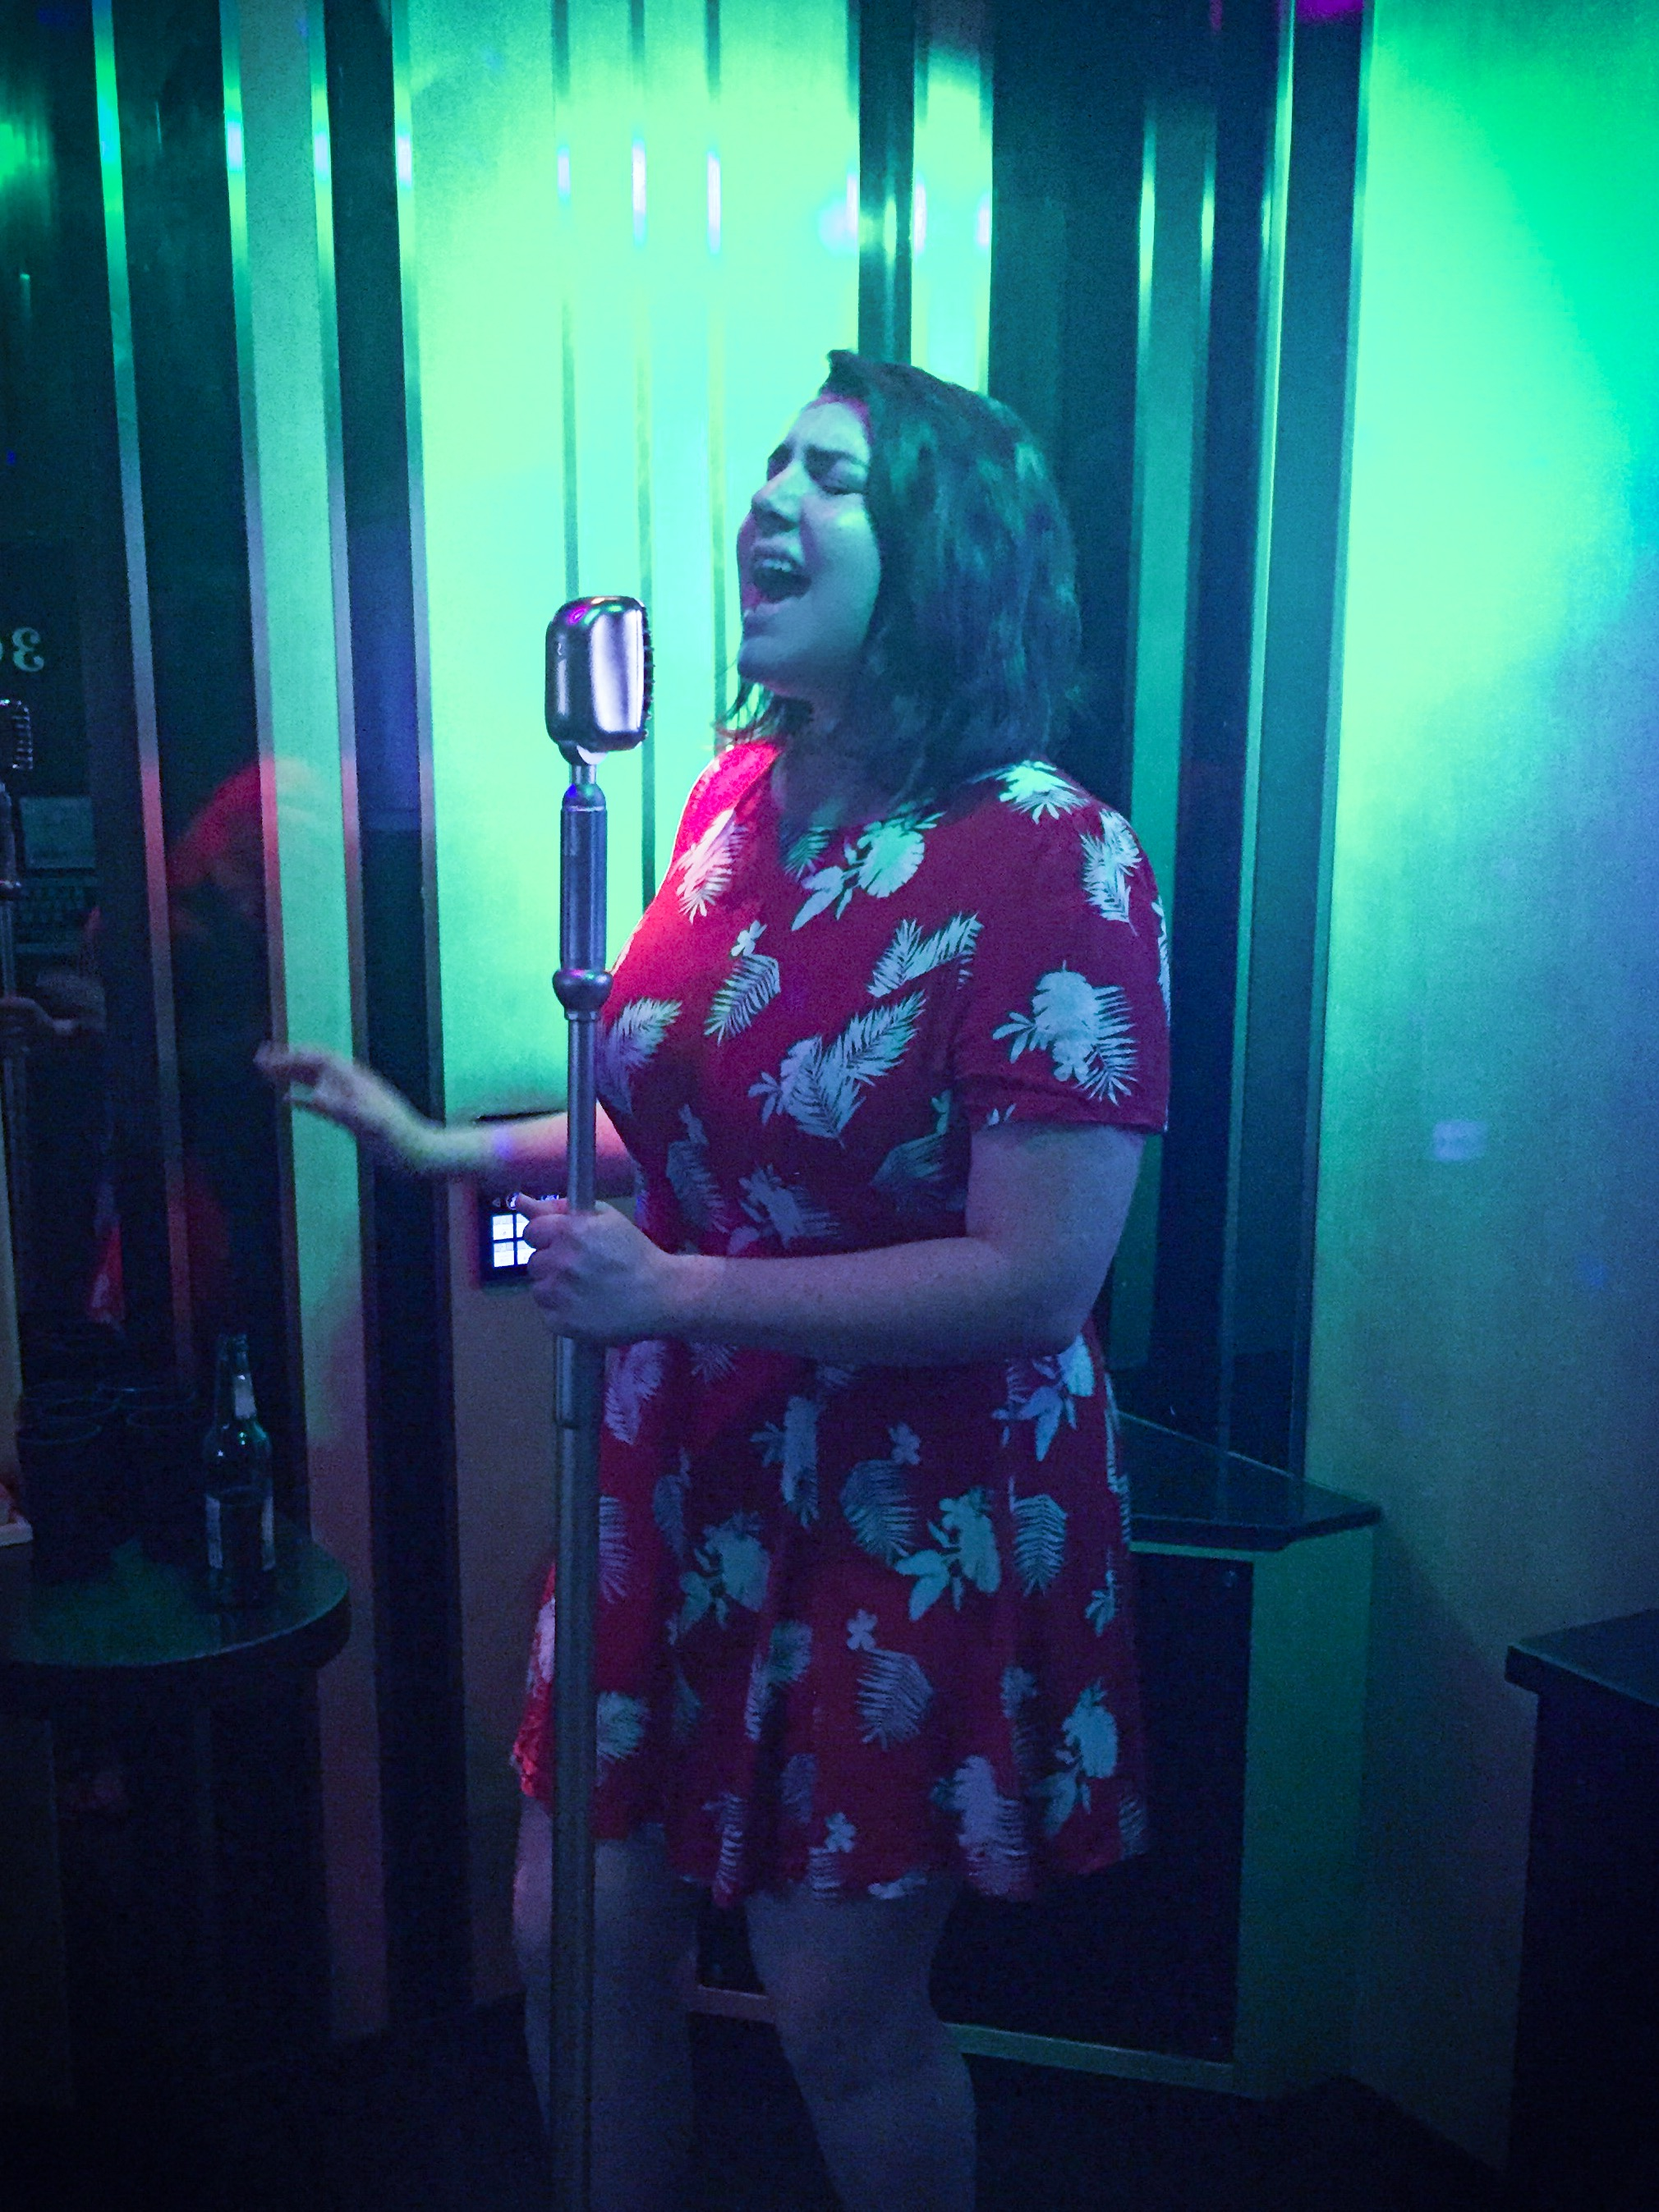 Rose singing with a microphone in a KTV room.